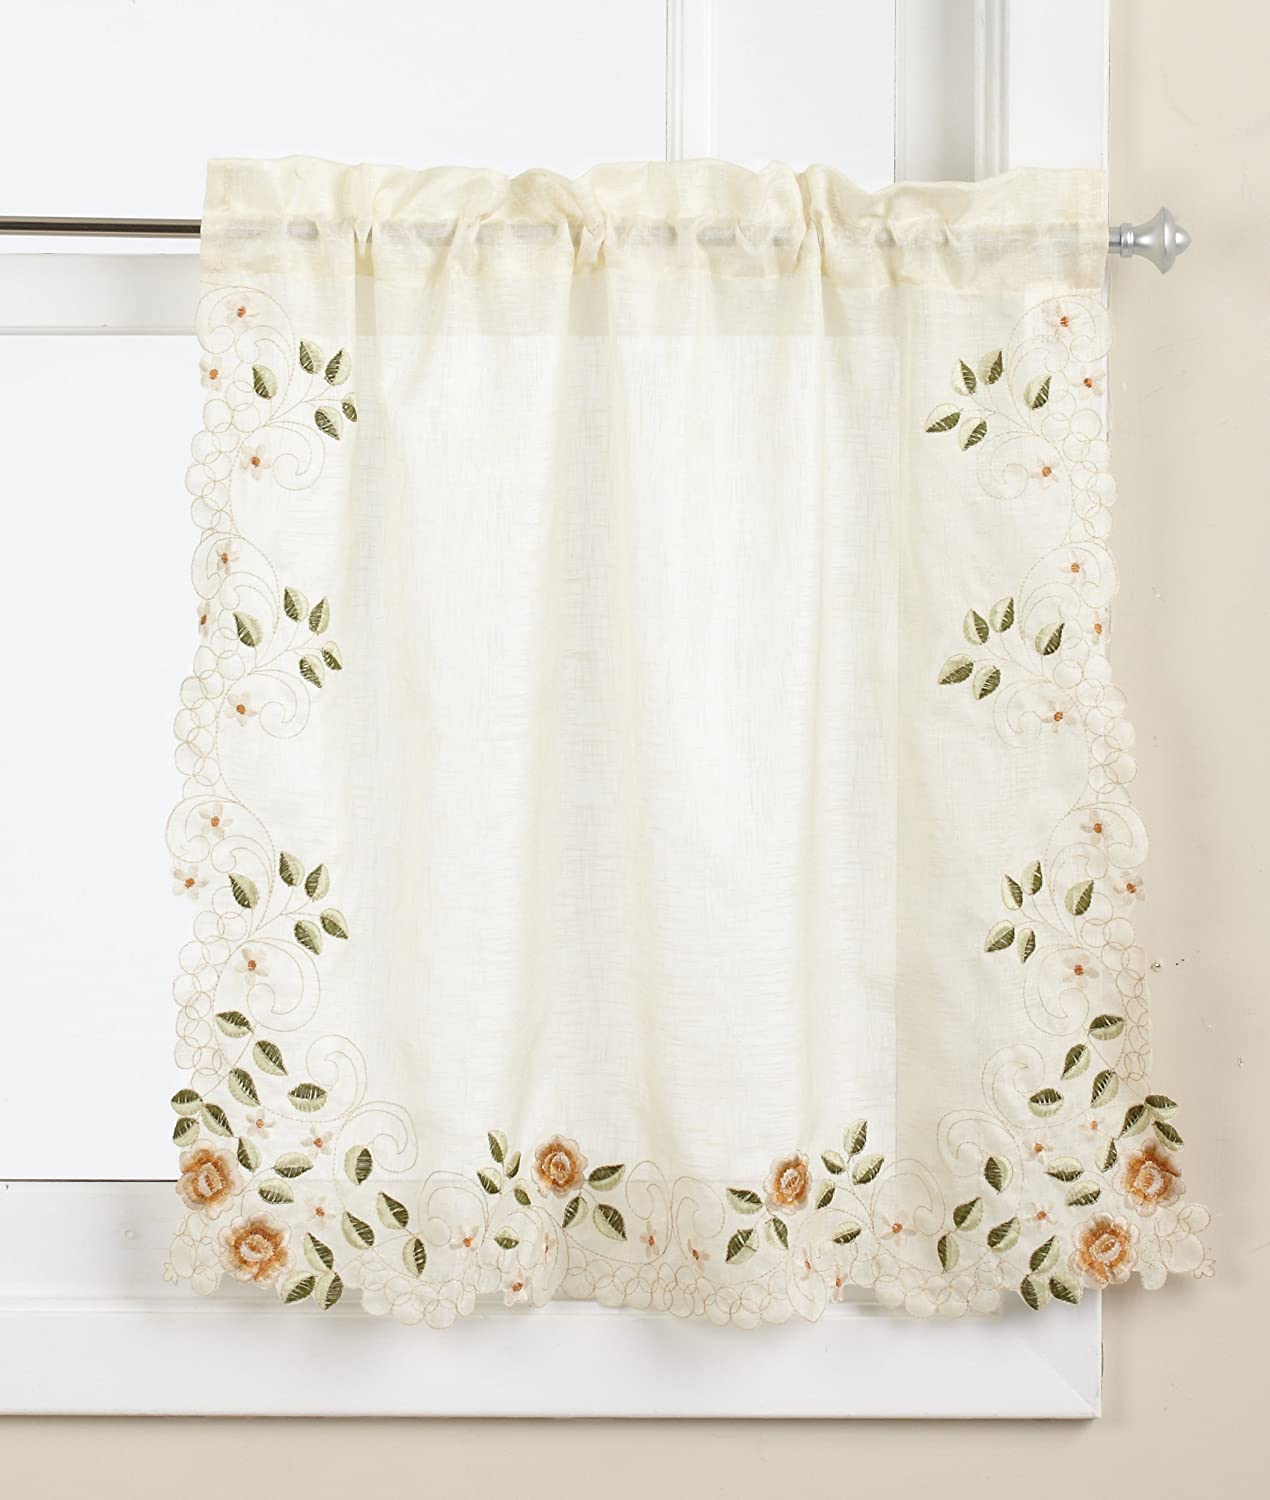 LORRAINE HOME FASHIONS Rosemary Tier Curtain Pair, 58 by 24-Inch, Linen